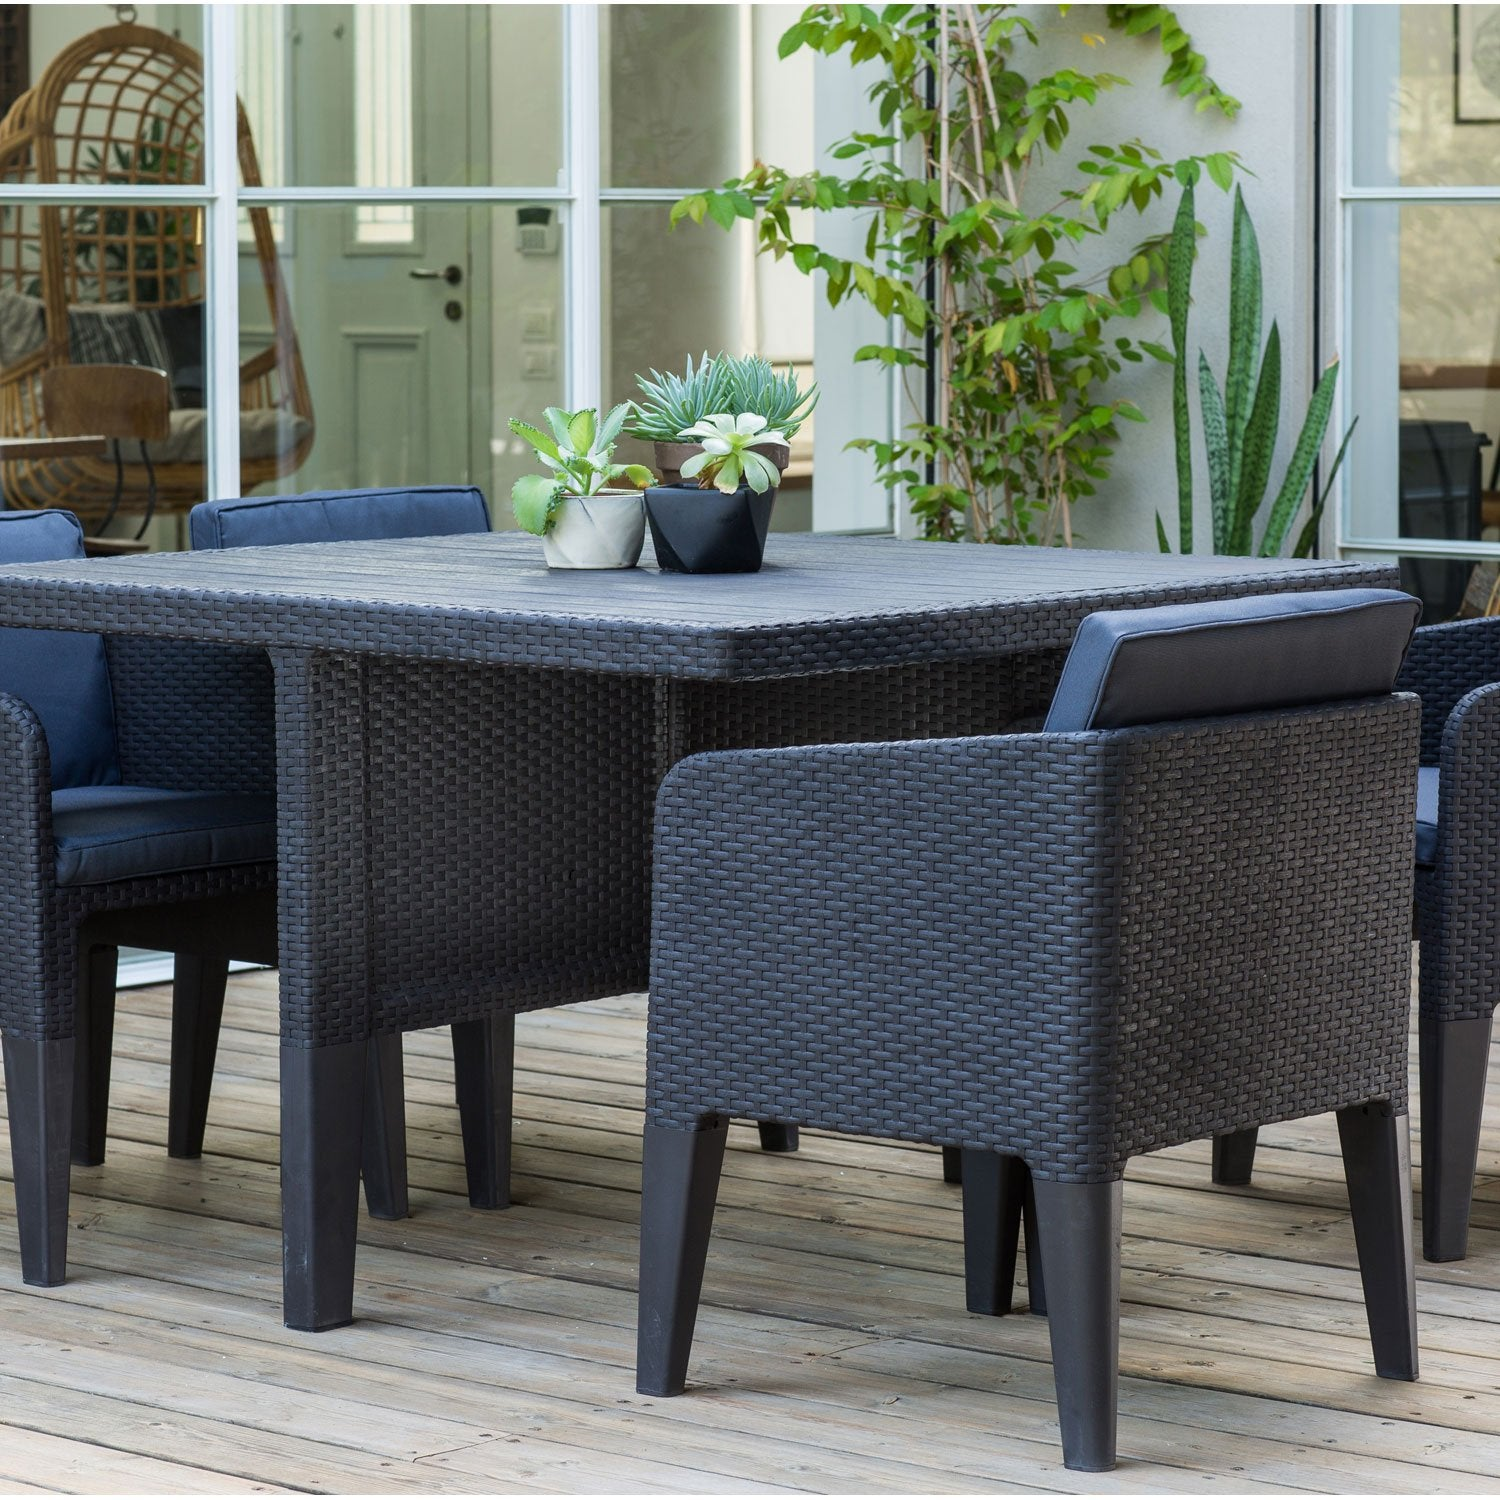 Salon de jardin columbia r sine inject e gris anthracite for Salon de jardin leroy merlin